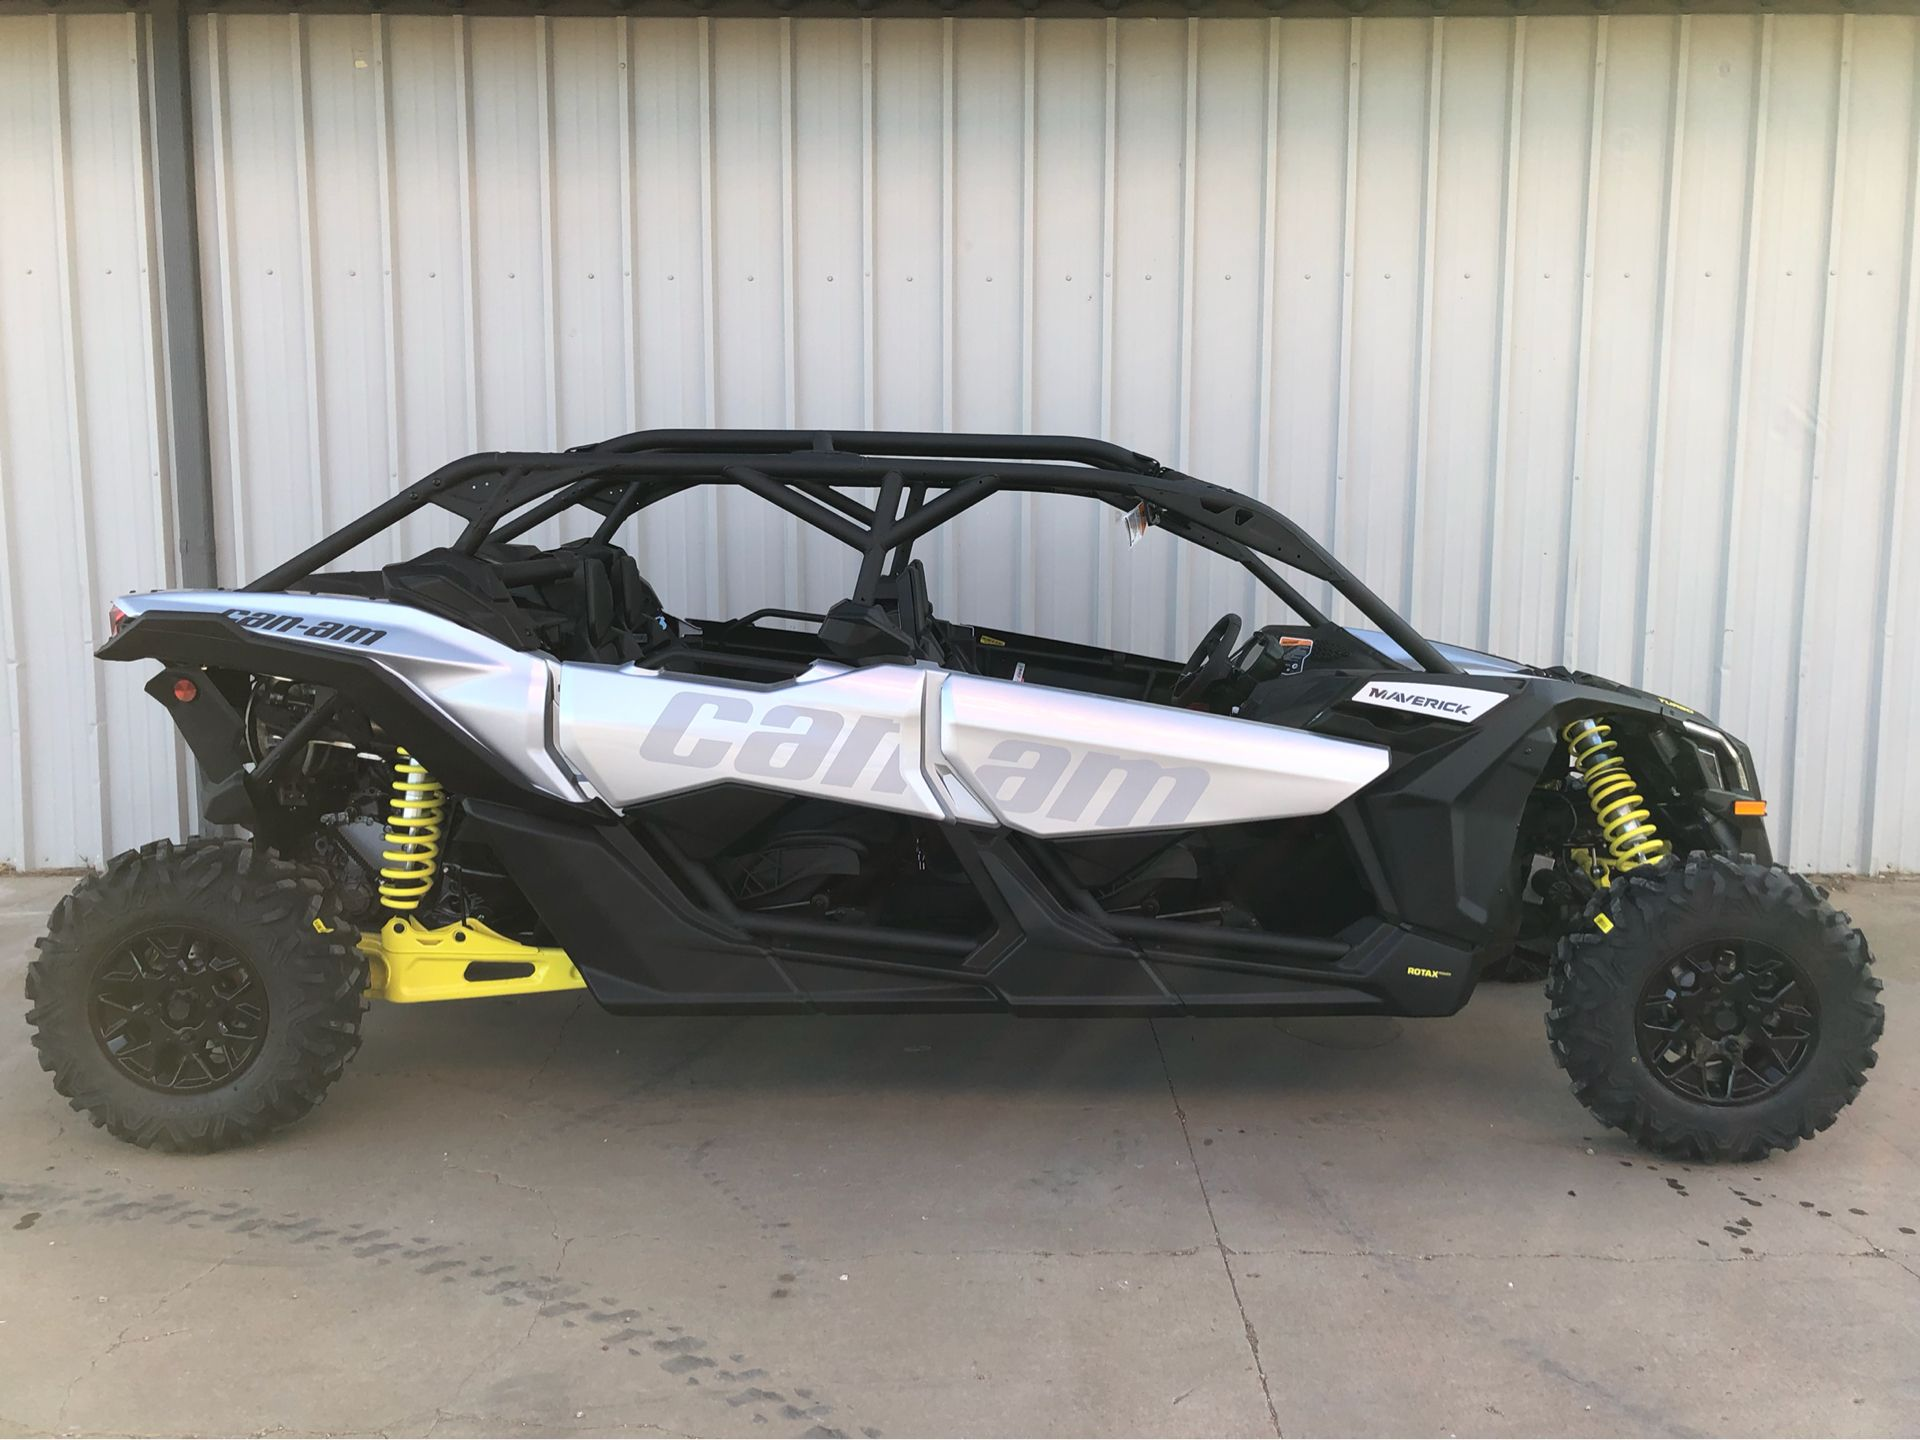 2019 Can-Am Maverick X3 Max Turbo for sale 76790